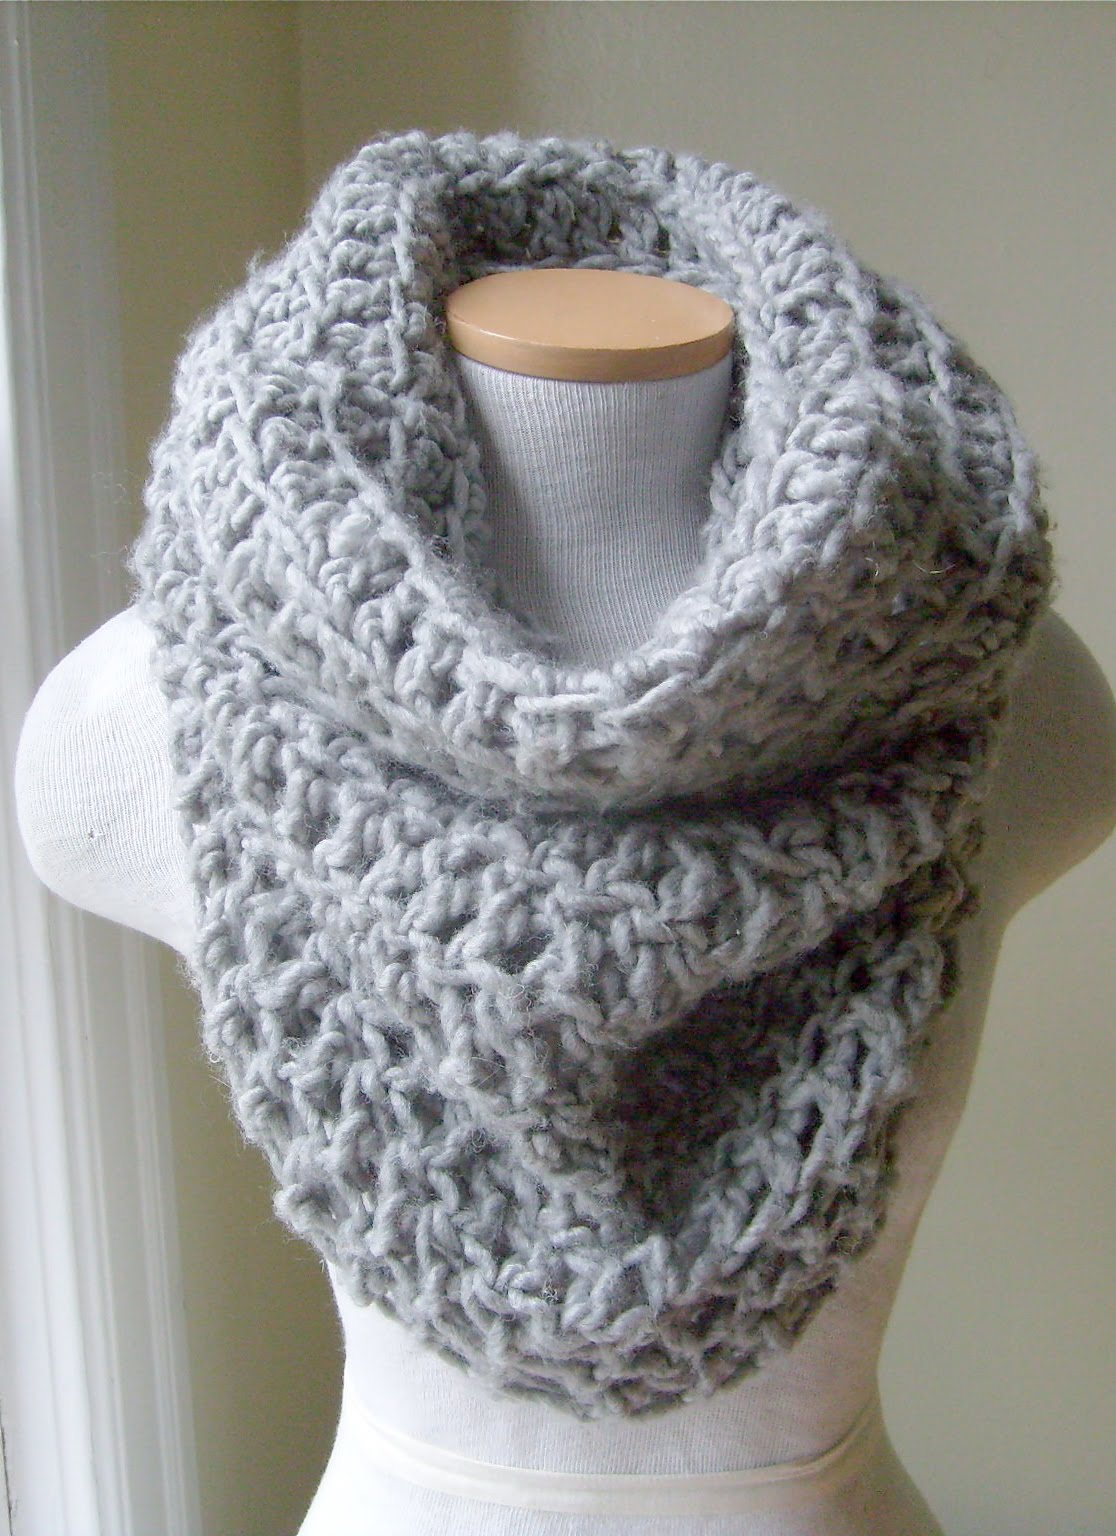 Queen Heron Creations: Crocheted Cowl Neckwarmers